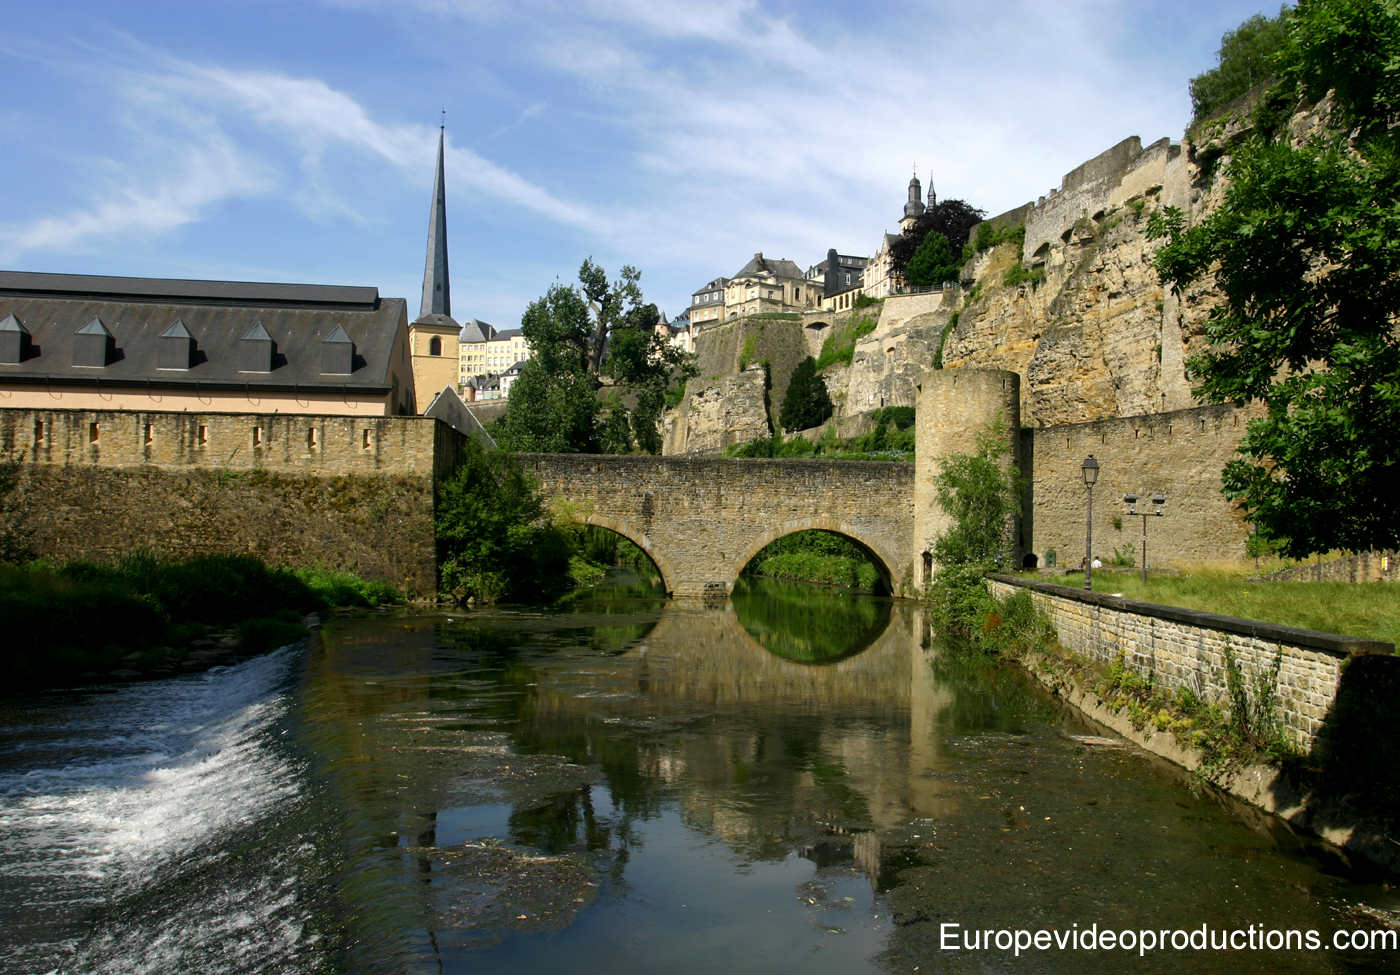 The Old town of Luxembourg with its fortifications – UNESCO World heritage site